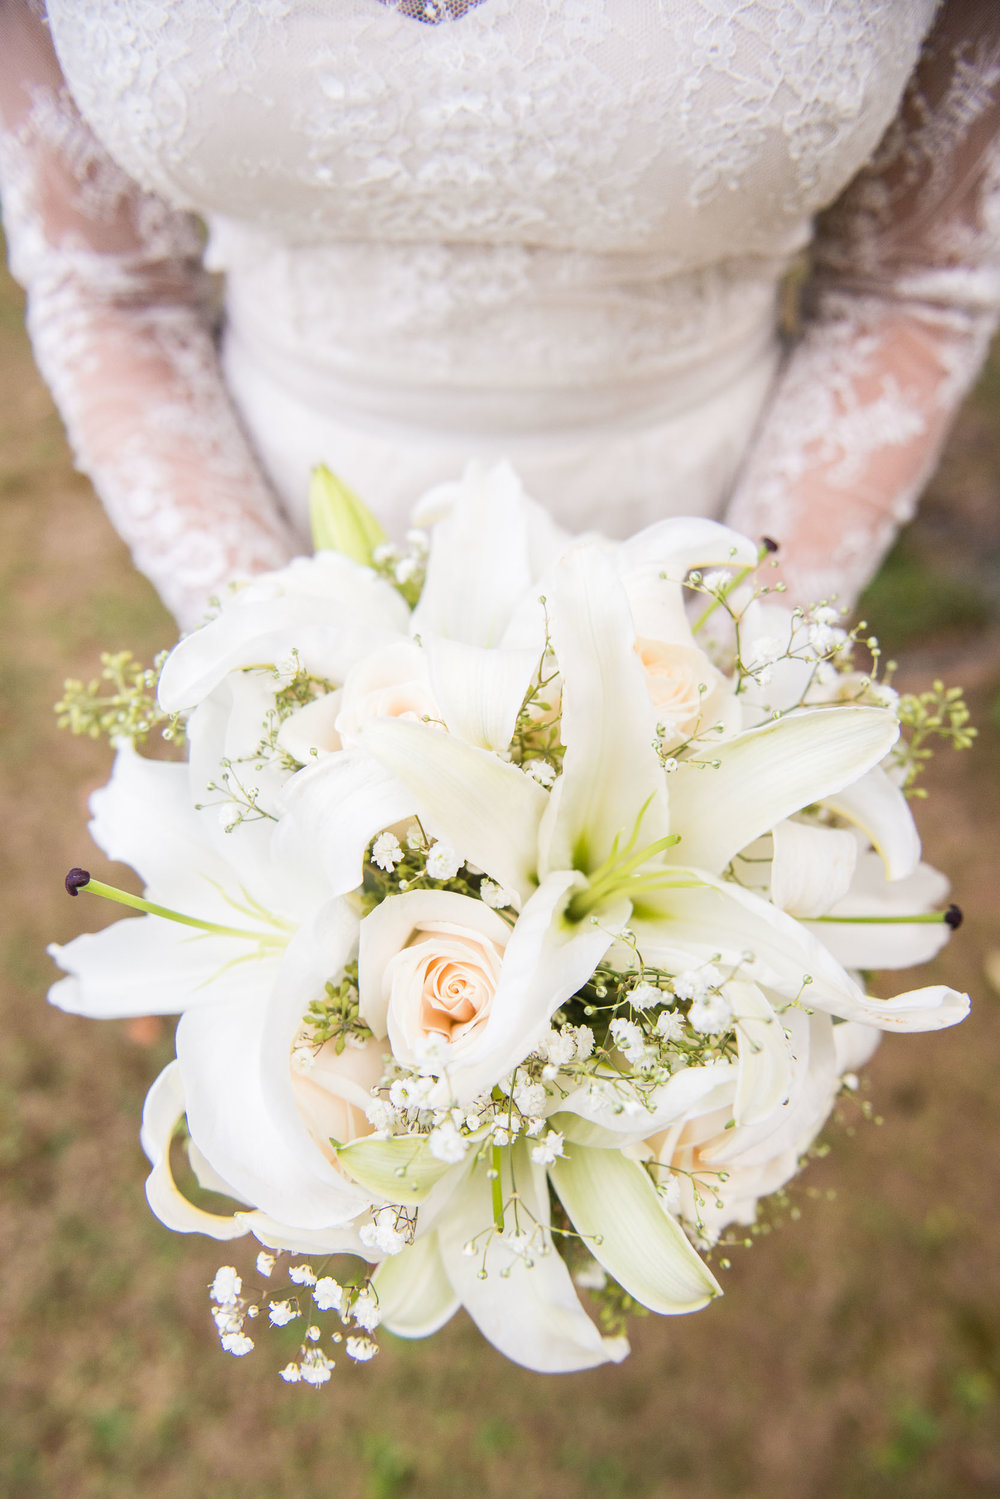 Hands with bouquet - Weddings - Photo credit Nicola Bailey.jpg